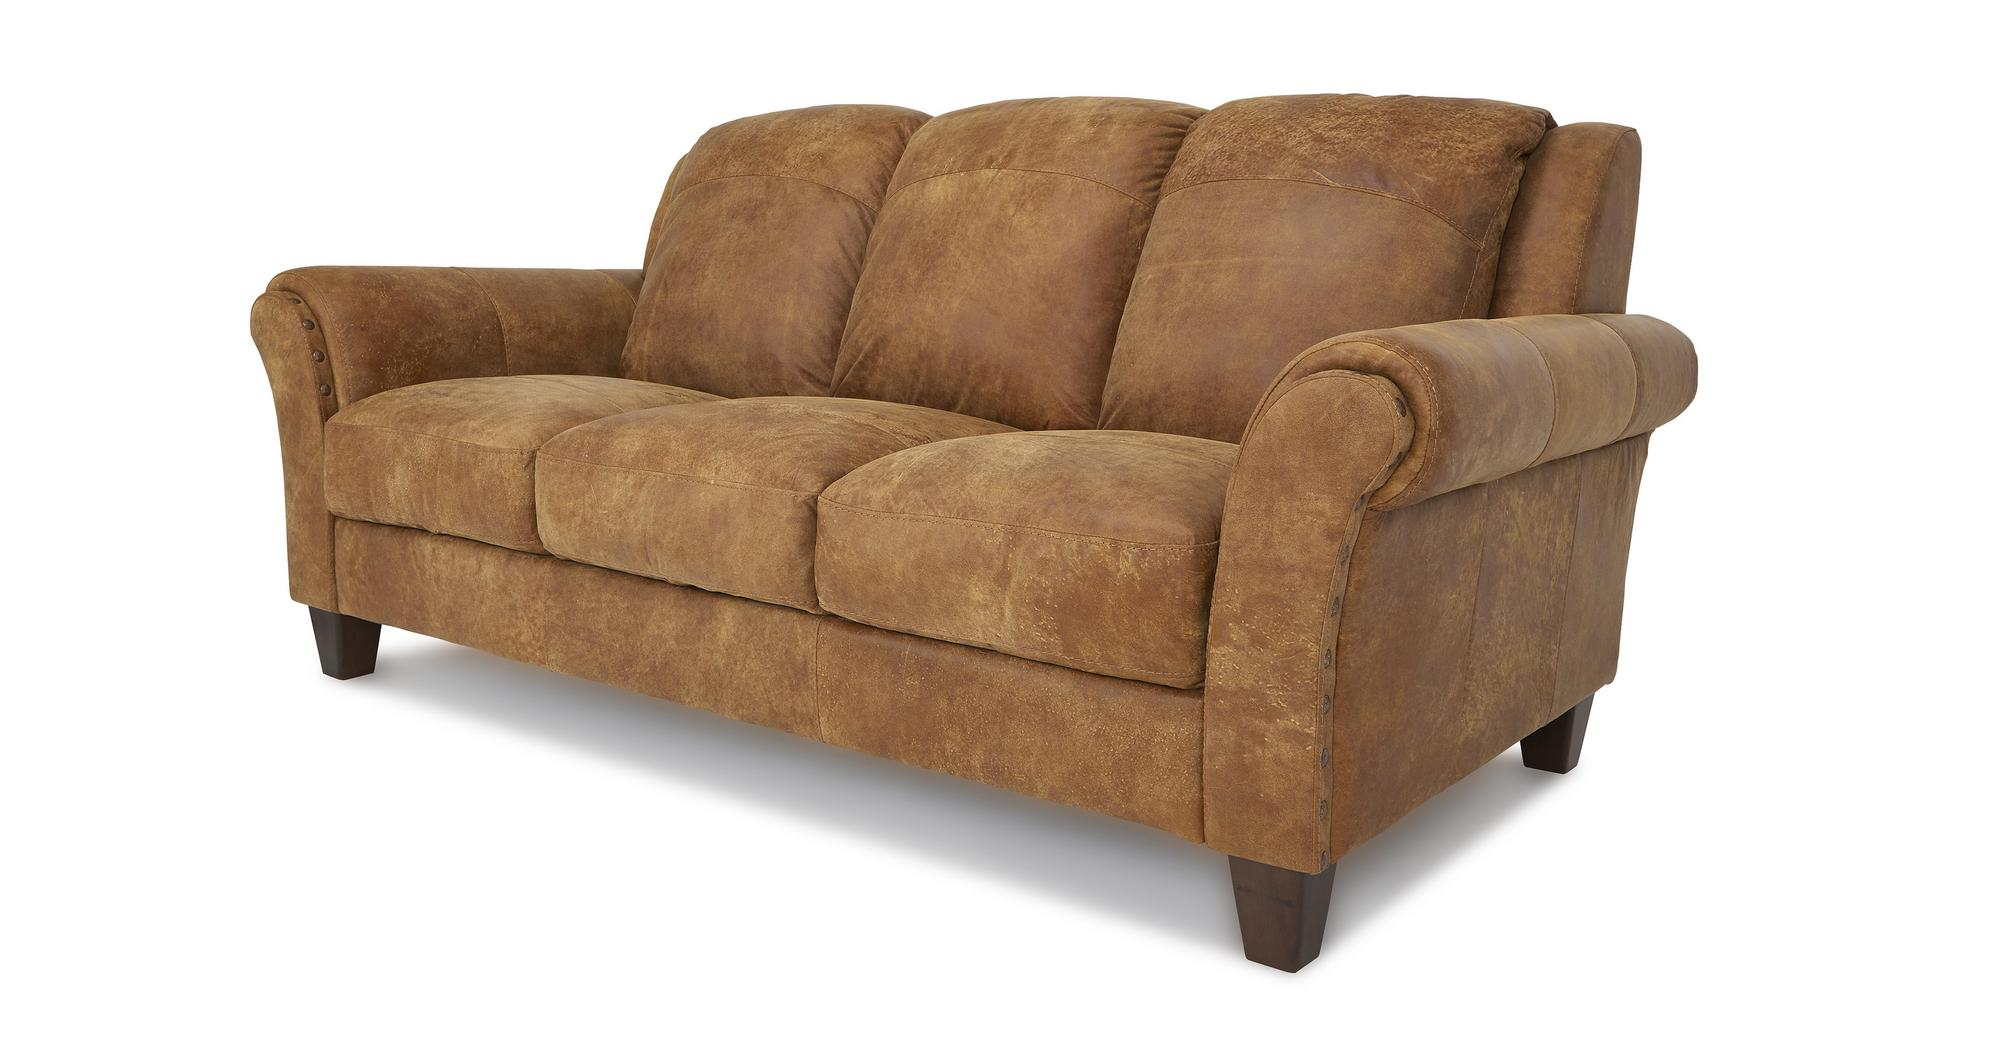 Dfs Peyton Ranch Natural Leather 3 Seater Sofa Armchair Ebay